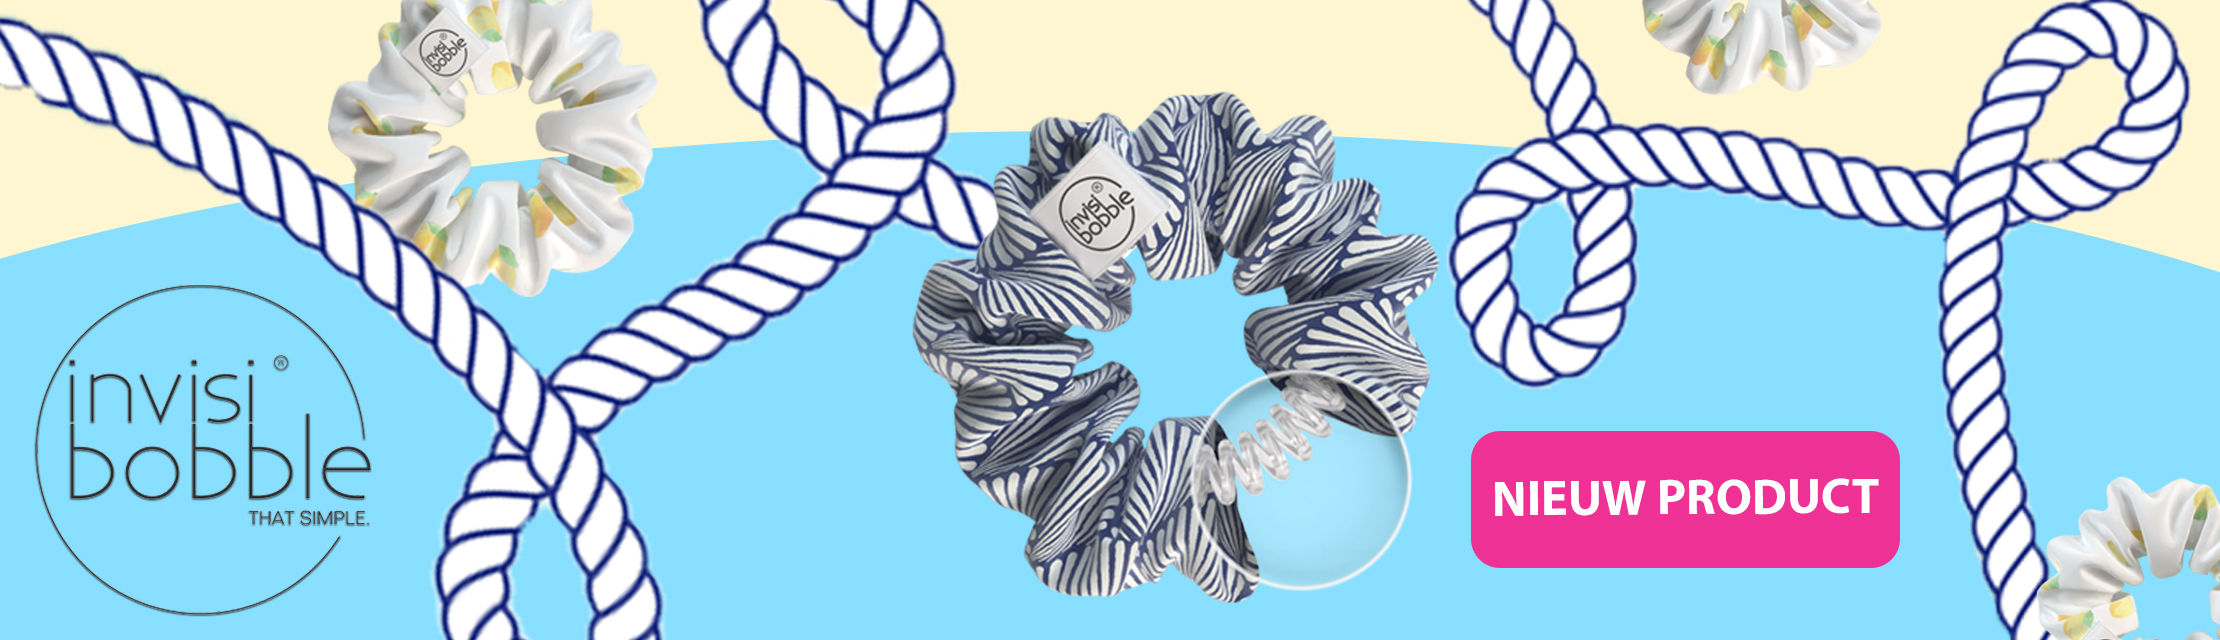 NEW INVISIBOBBLE SWIM WITH MI